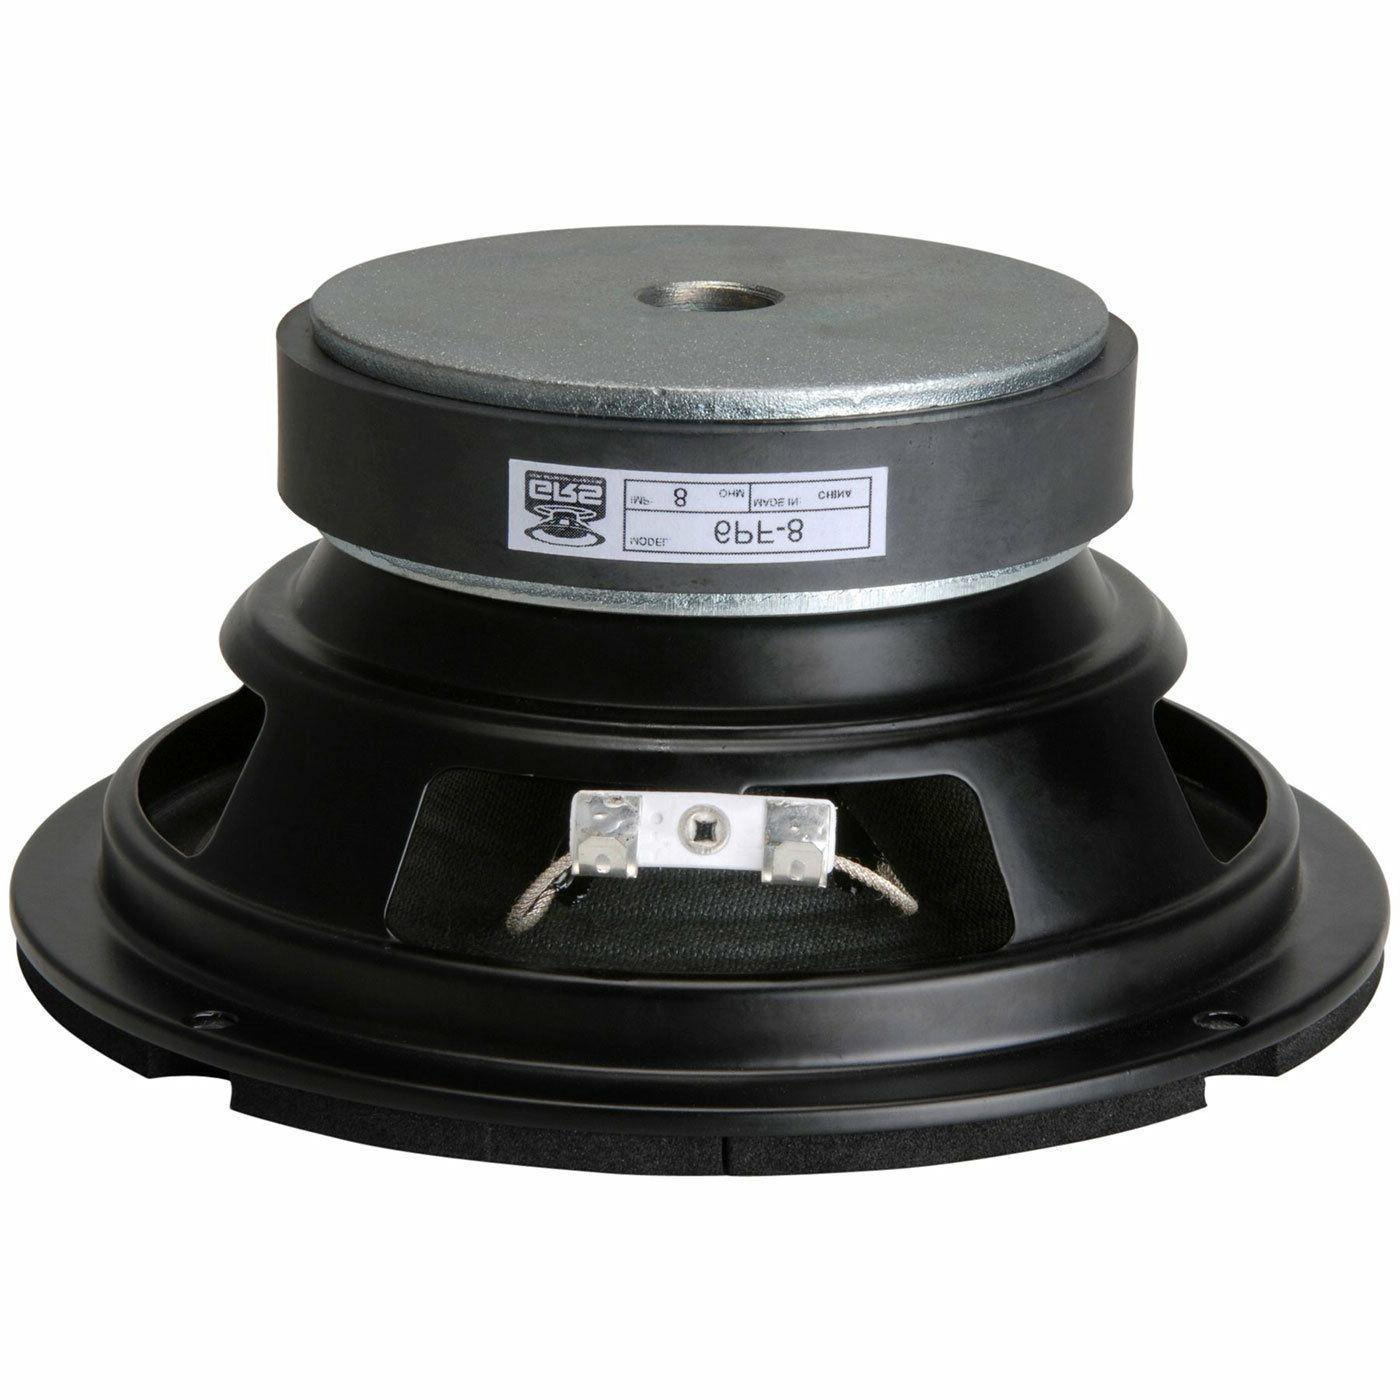 Replacement Promedia Subwoofer Not OEM